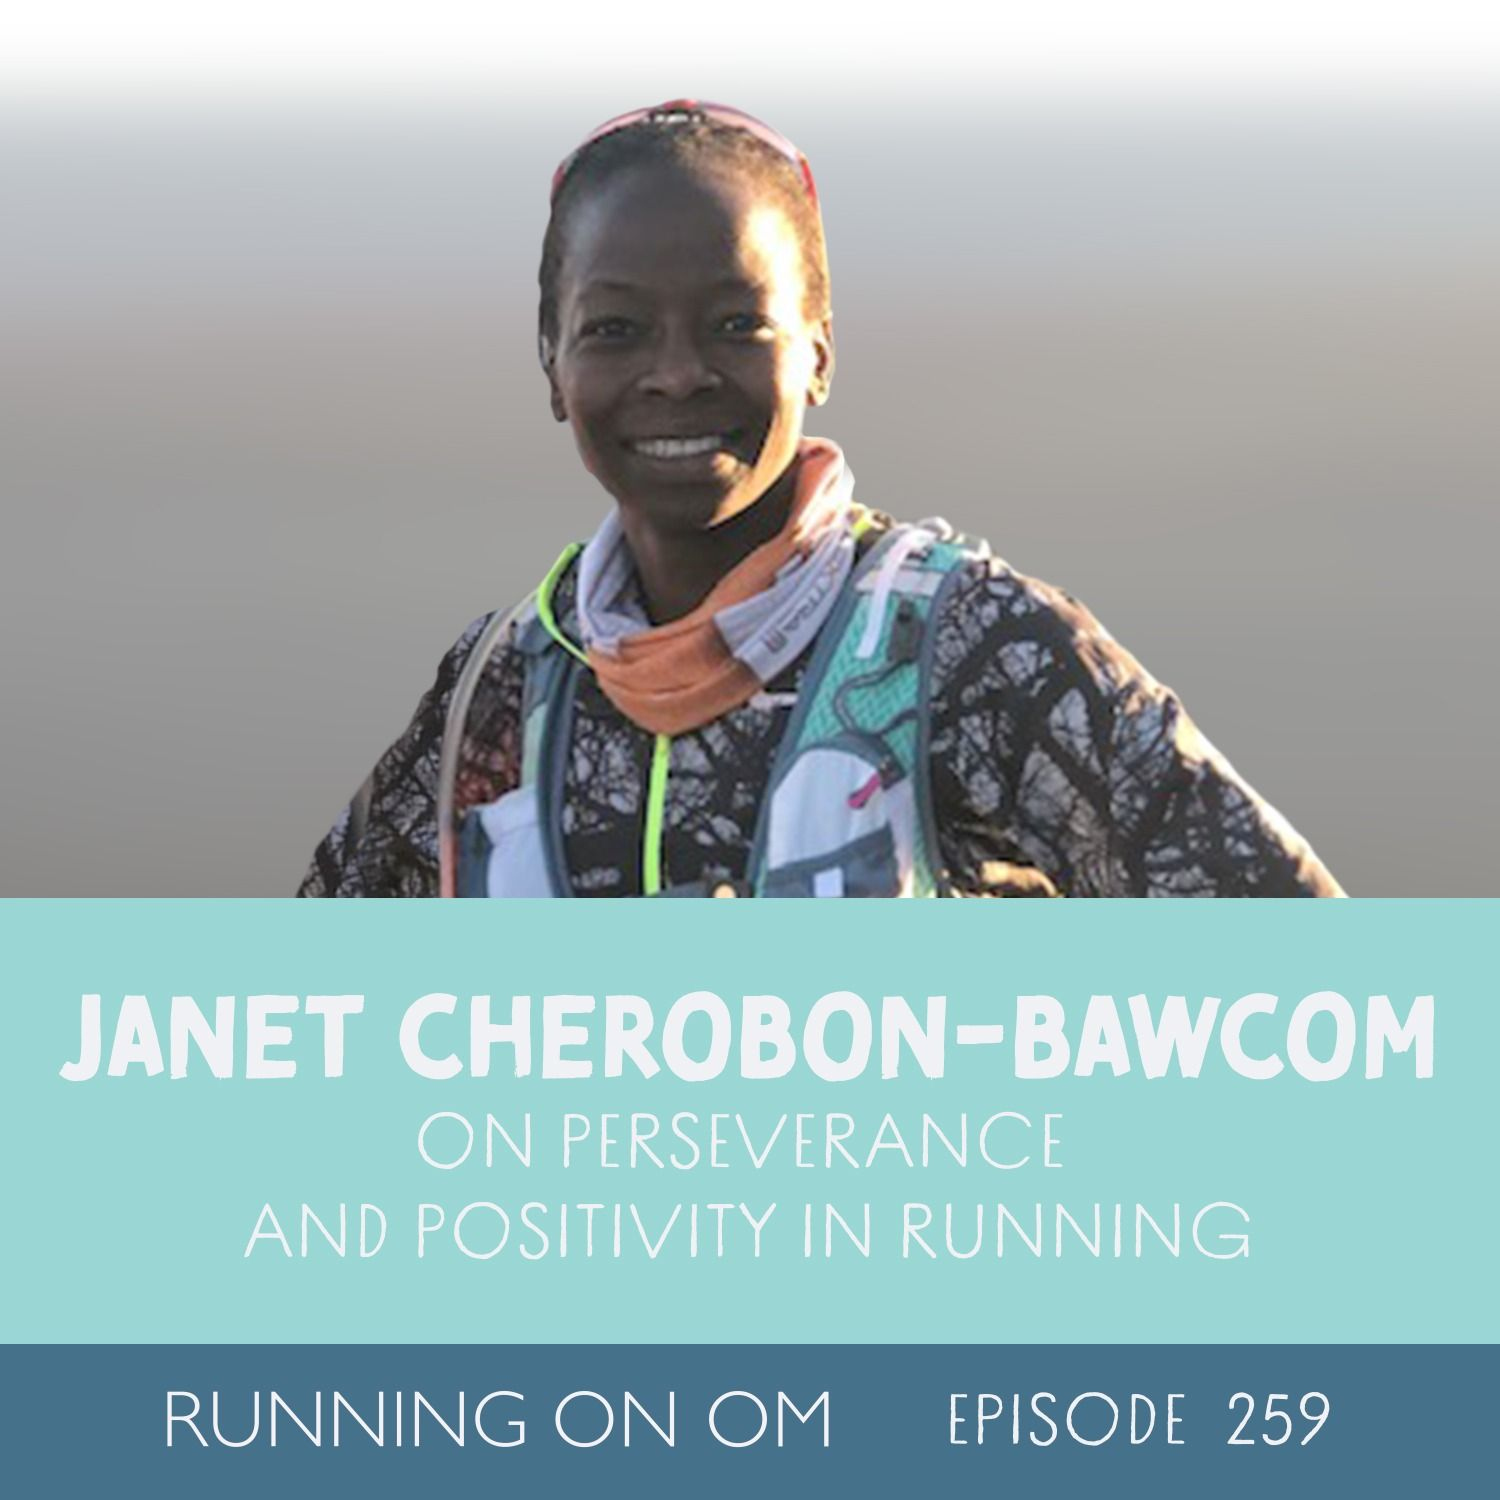 Janet Cherobon-Bawcom on Perseverance and Positivity in Running